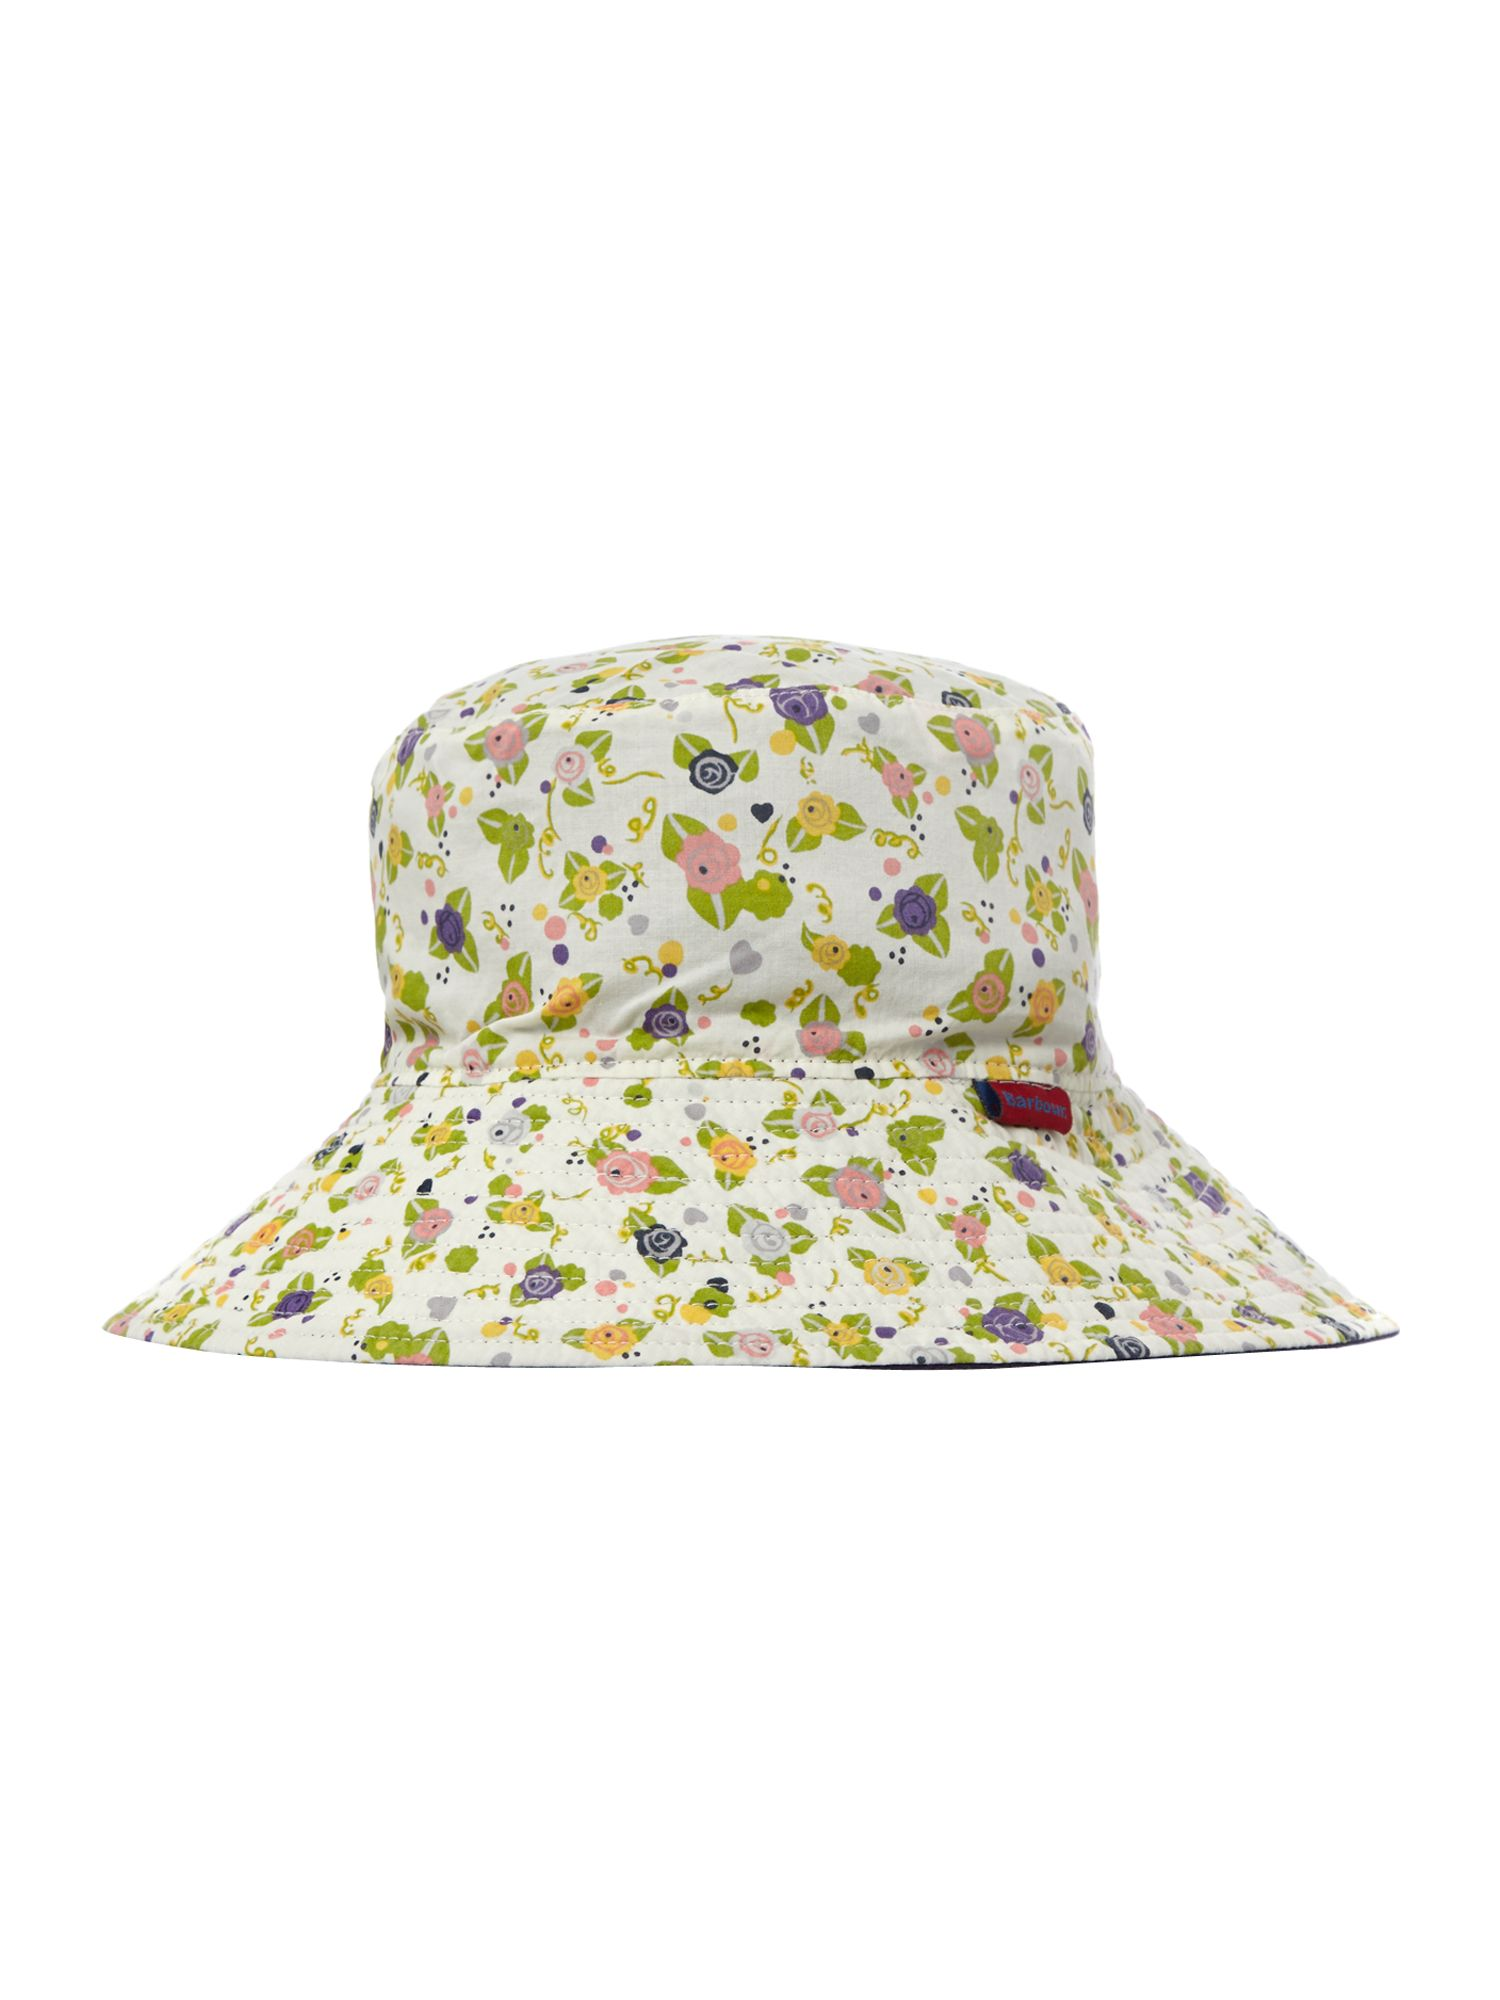 Girls fully reversible floral hat